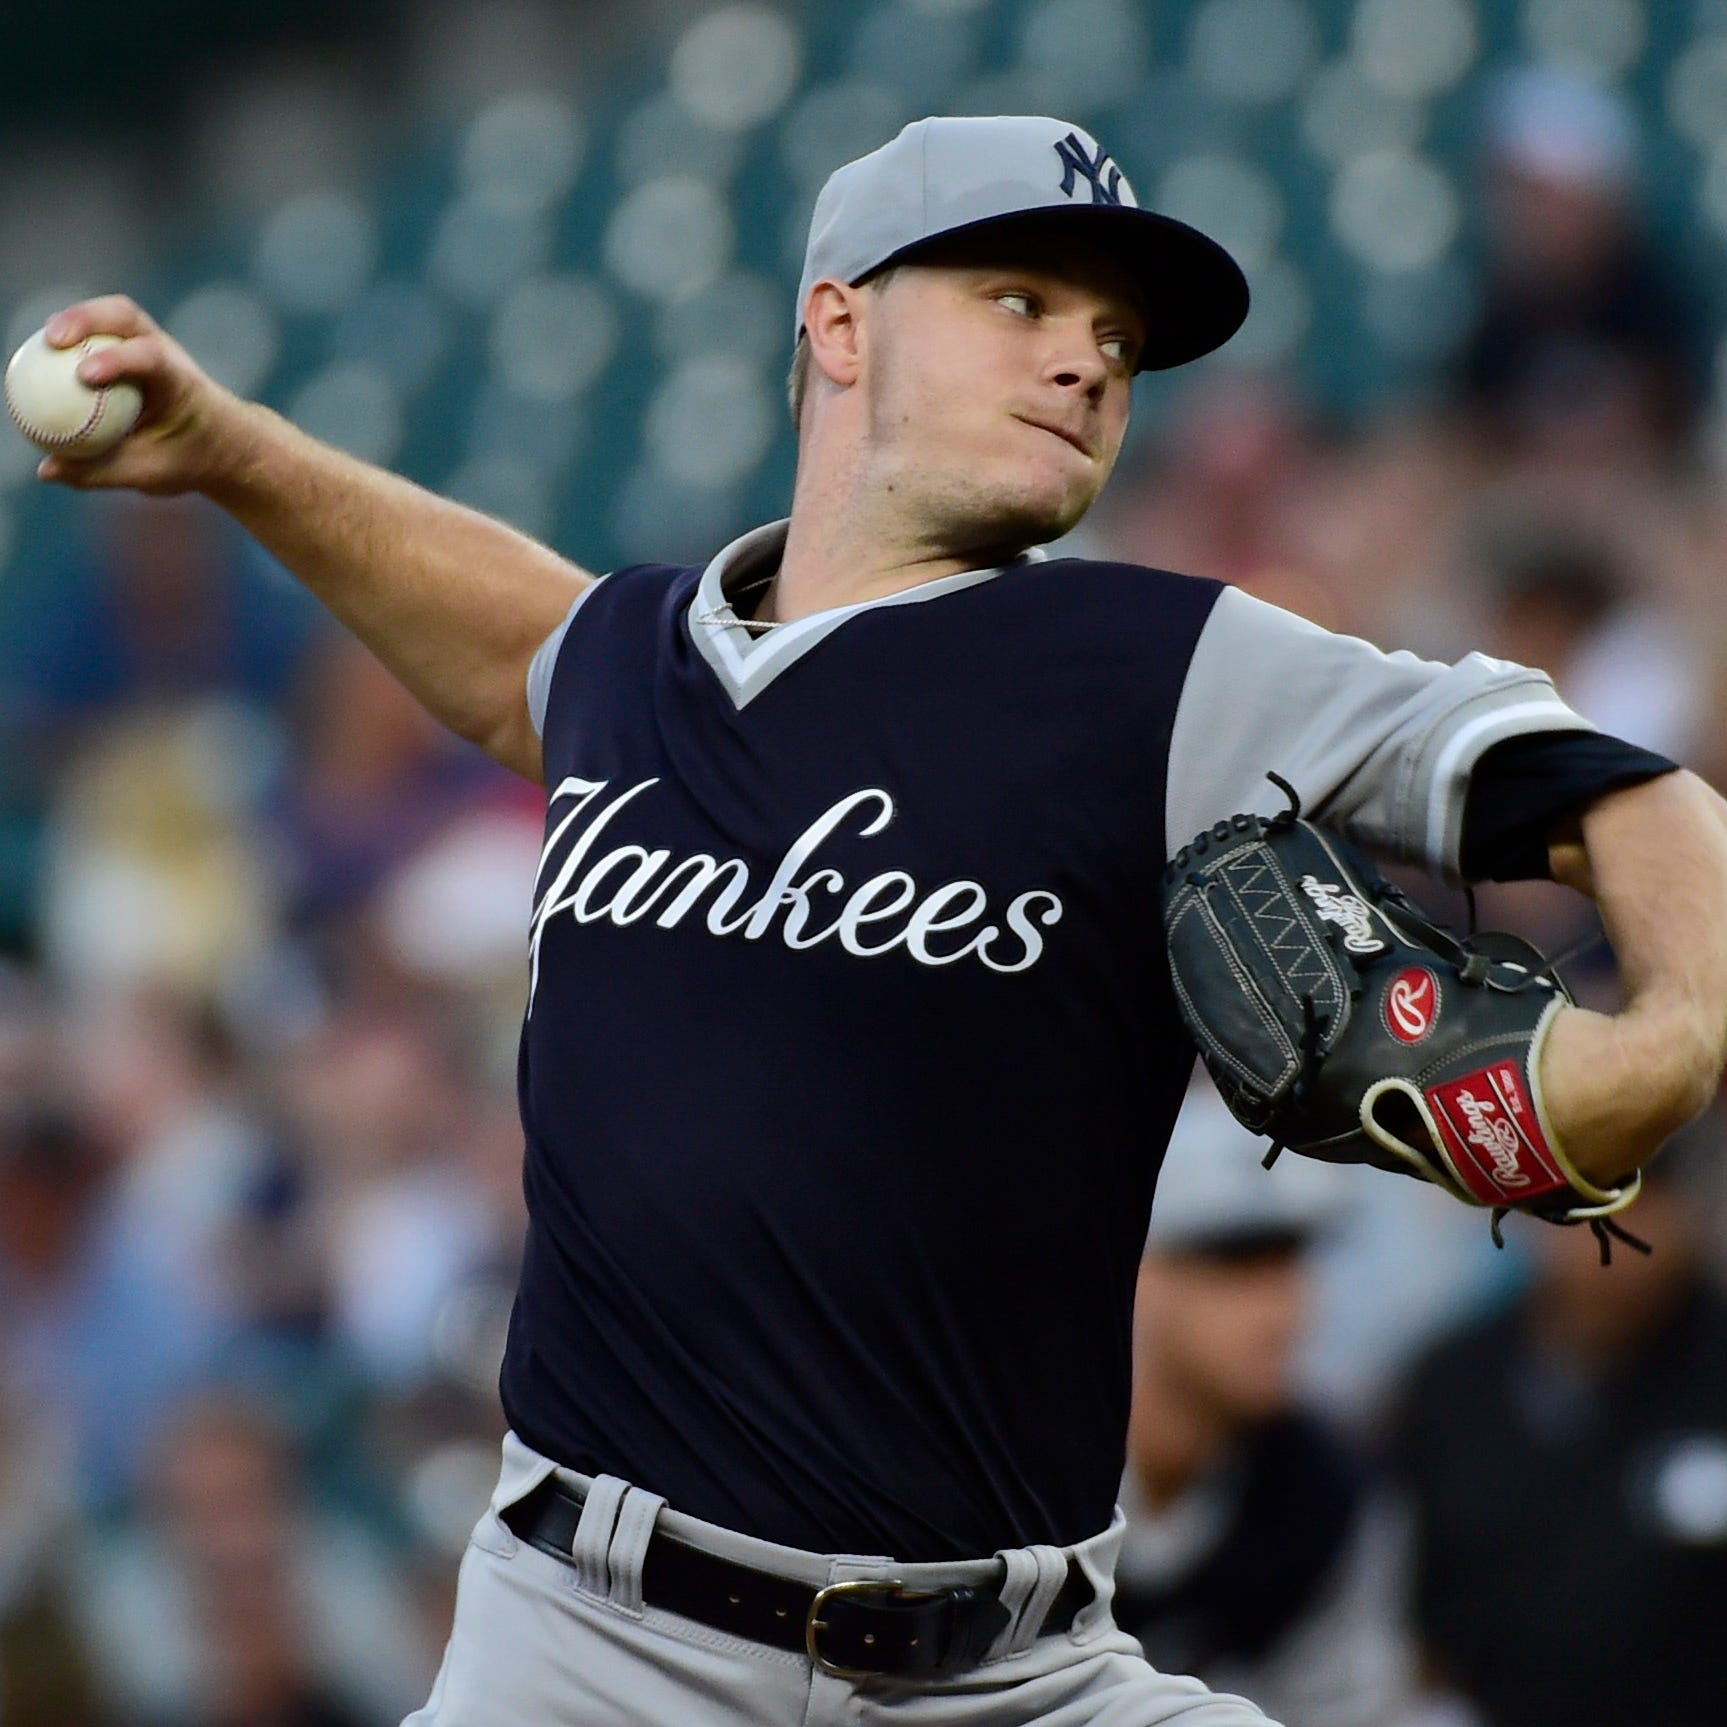 Yankees finalize Sonny Gray trade to Reds for prospect Shed Long, per reports